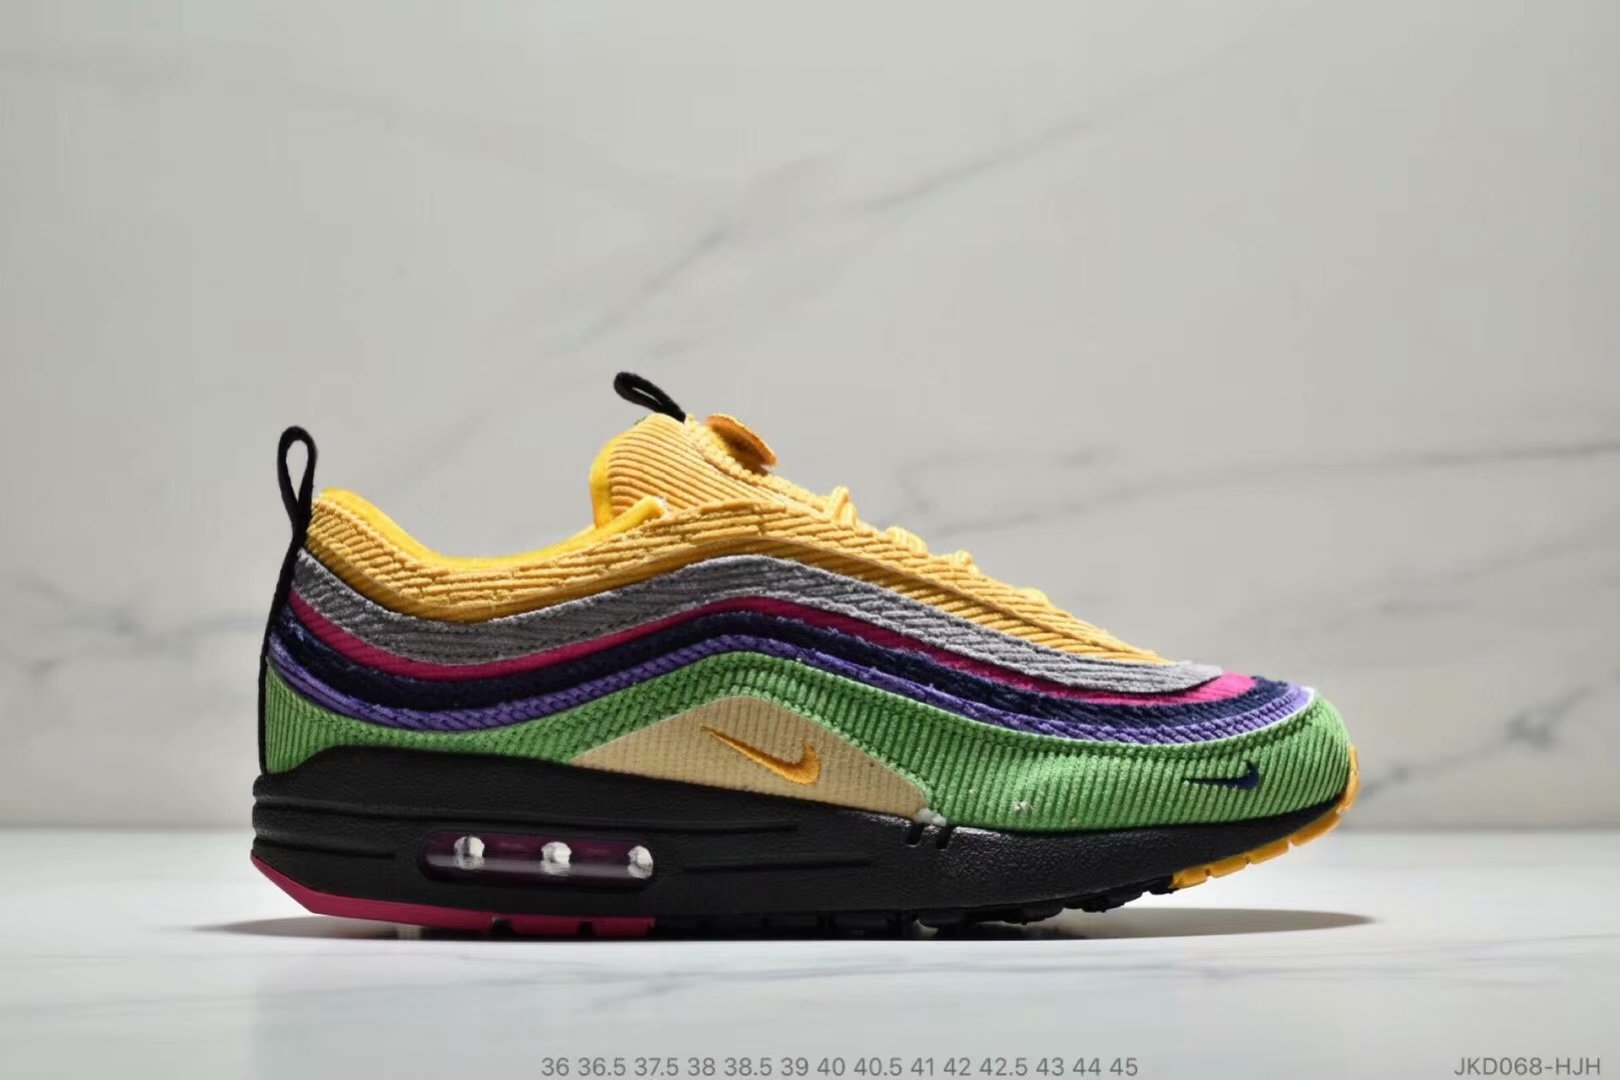 Wholesale Nike Air Max 87 1 Sean Wotherspoon Grass Green Yellow Grey Purple Black